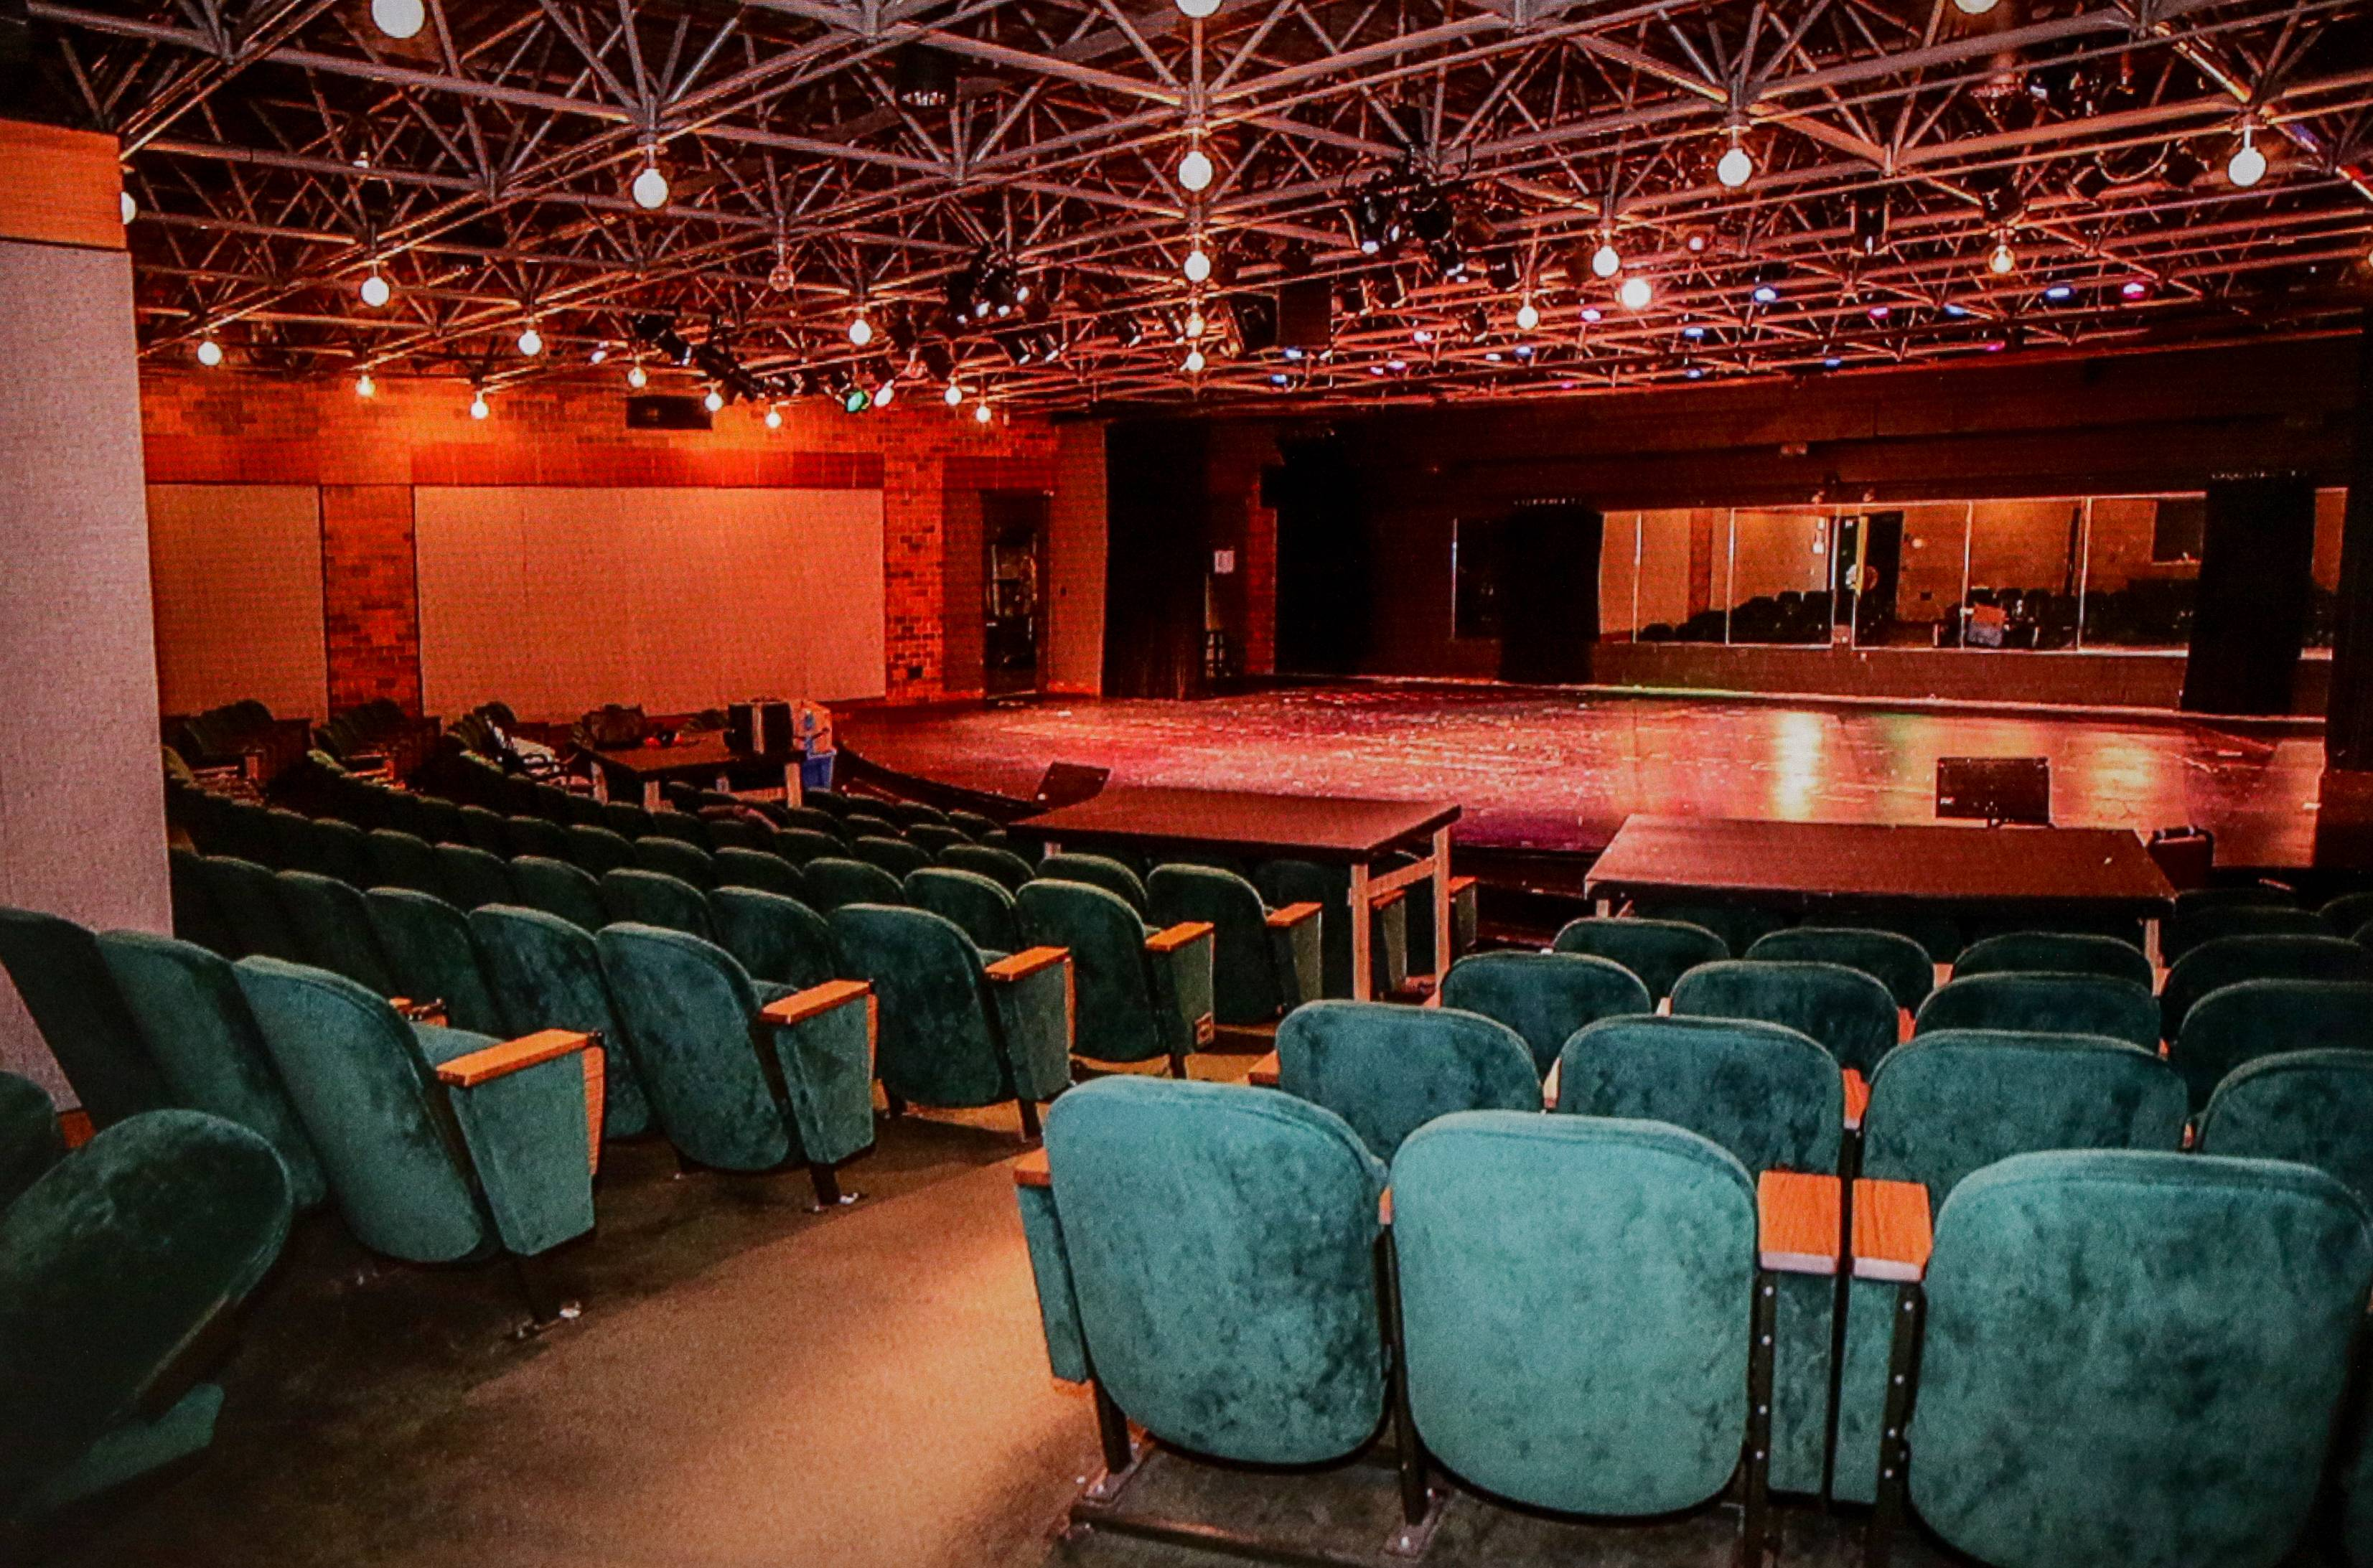 The Copley Theatre opened in 1981 in Aurora and hasn't seen many upgrades since. But it's scheduled to get a $1 million facelift as part of the Paramount Theatre's $4.5 million Act 2 capital campaign, which launched Thursday.